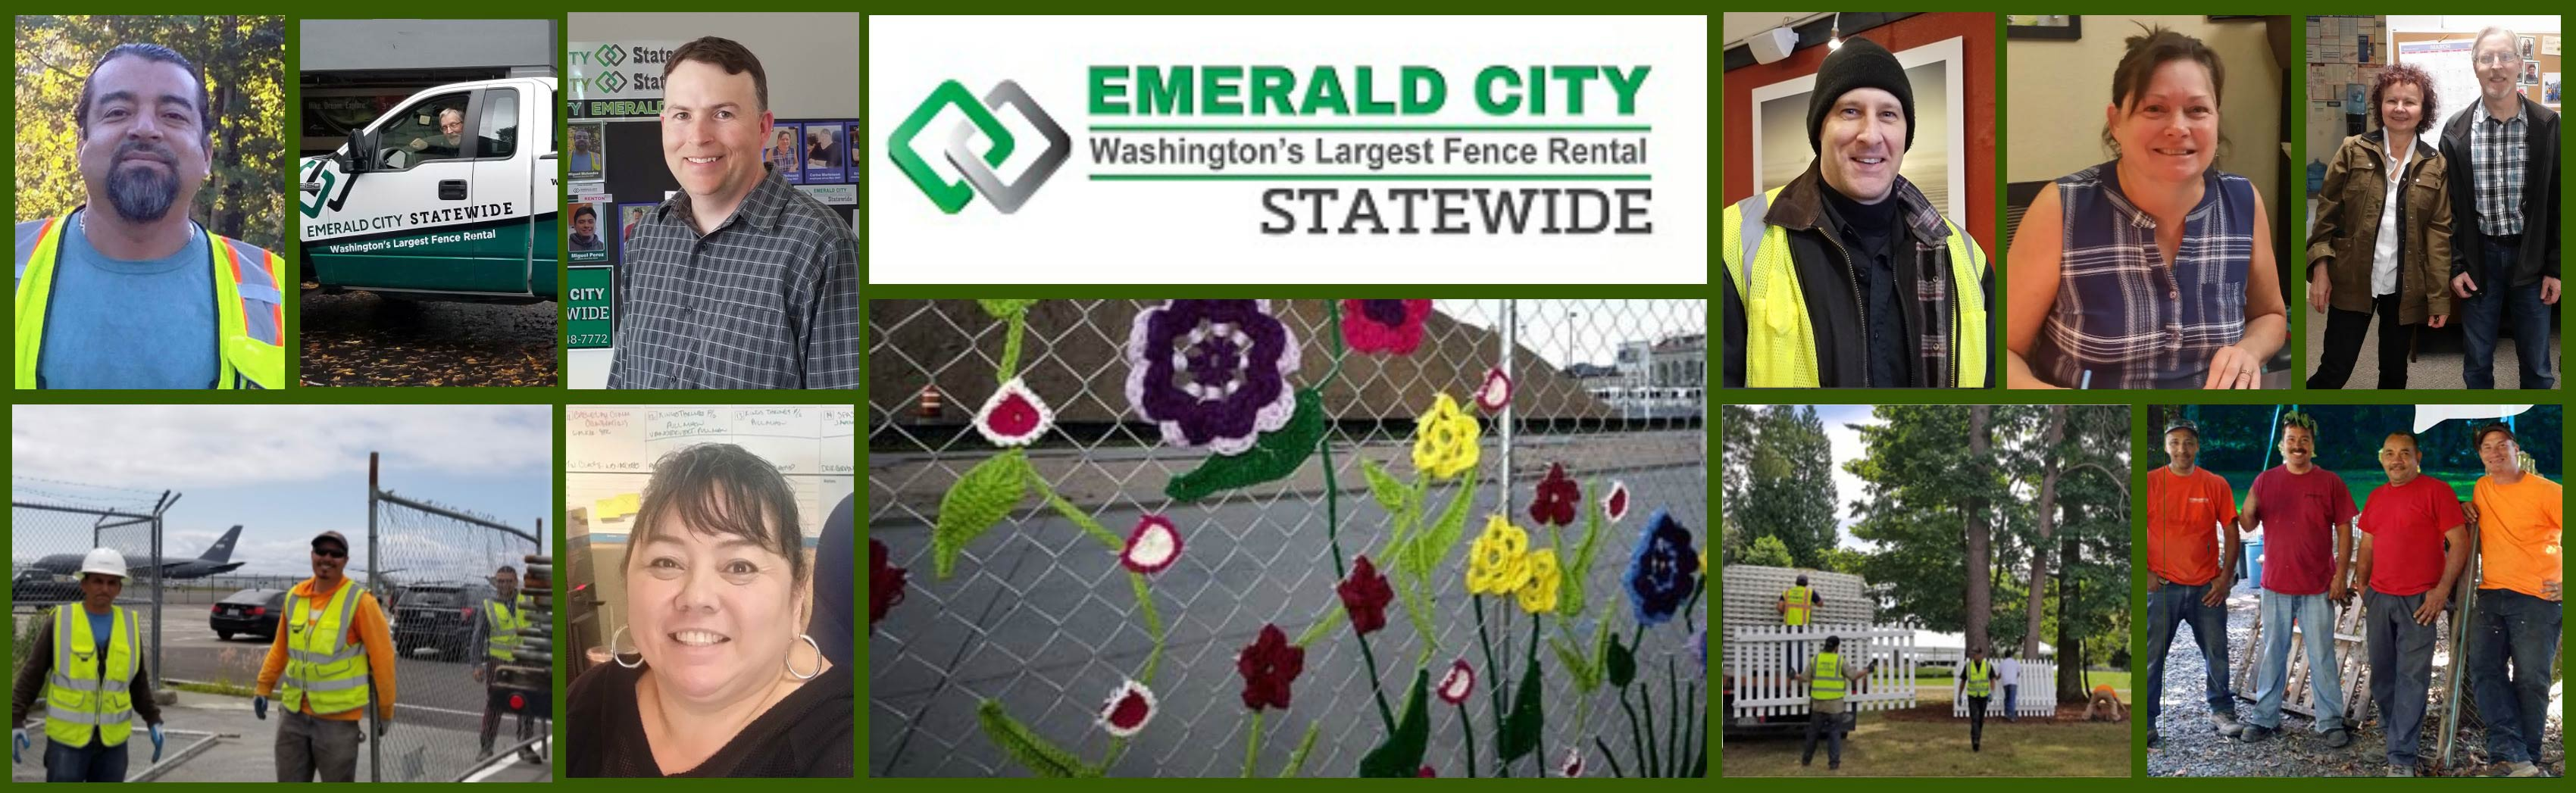 Emerald City Statewide fence rental staff